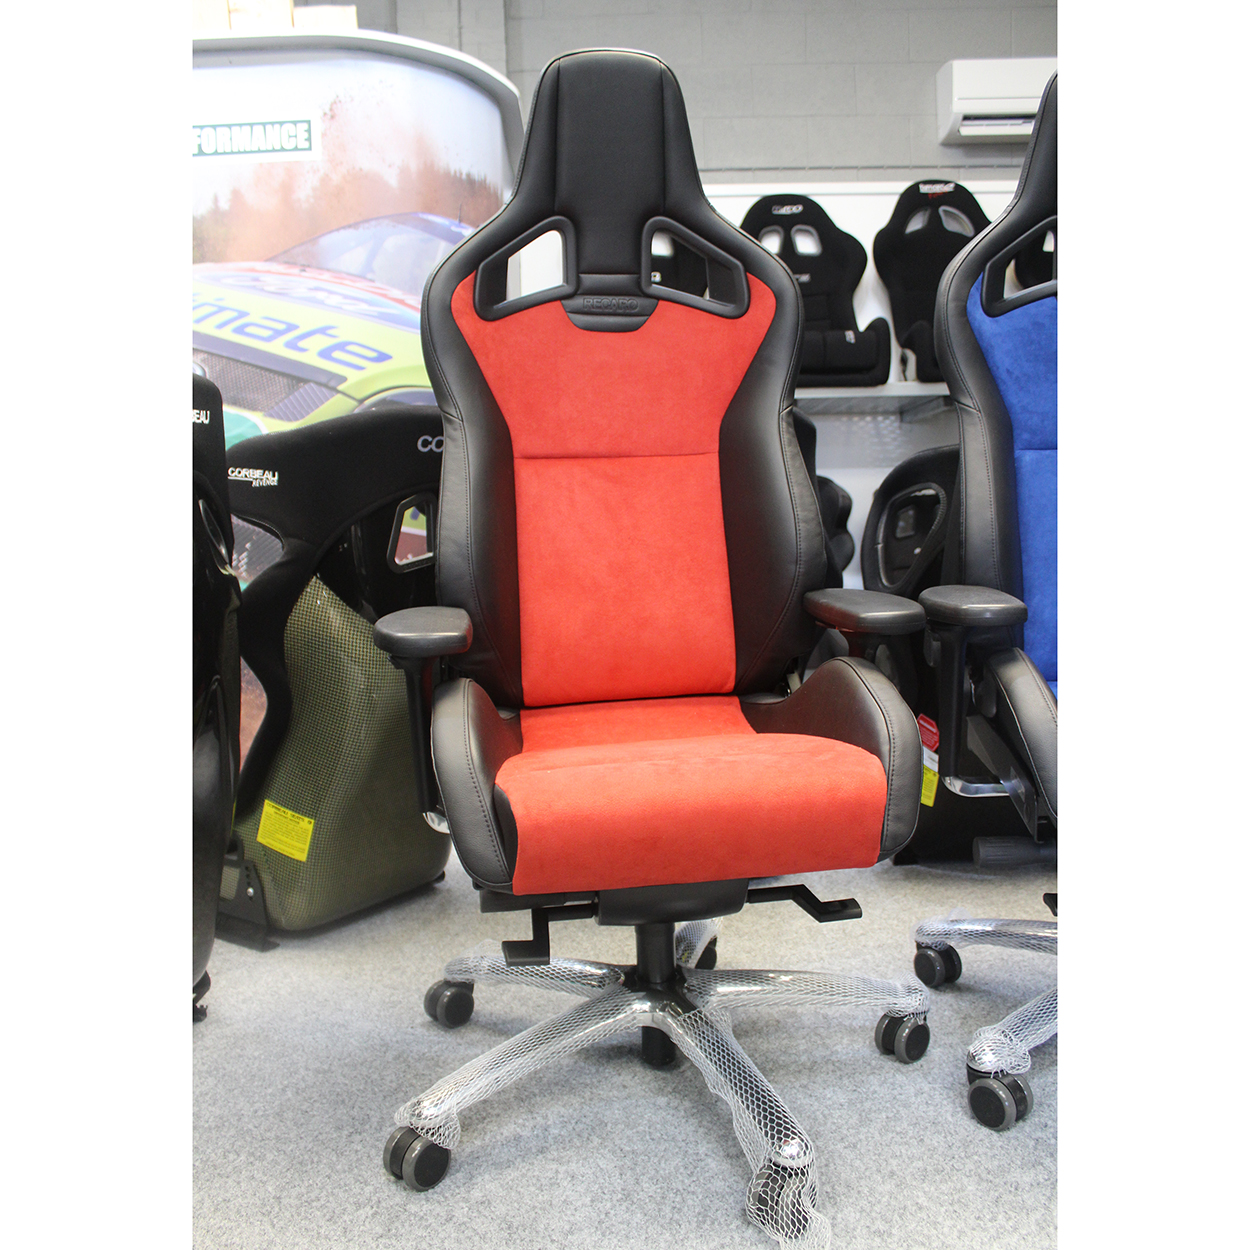 cesca chair replacement seats uk pool float recaro sportster cs office sport seat gsm